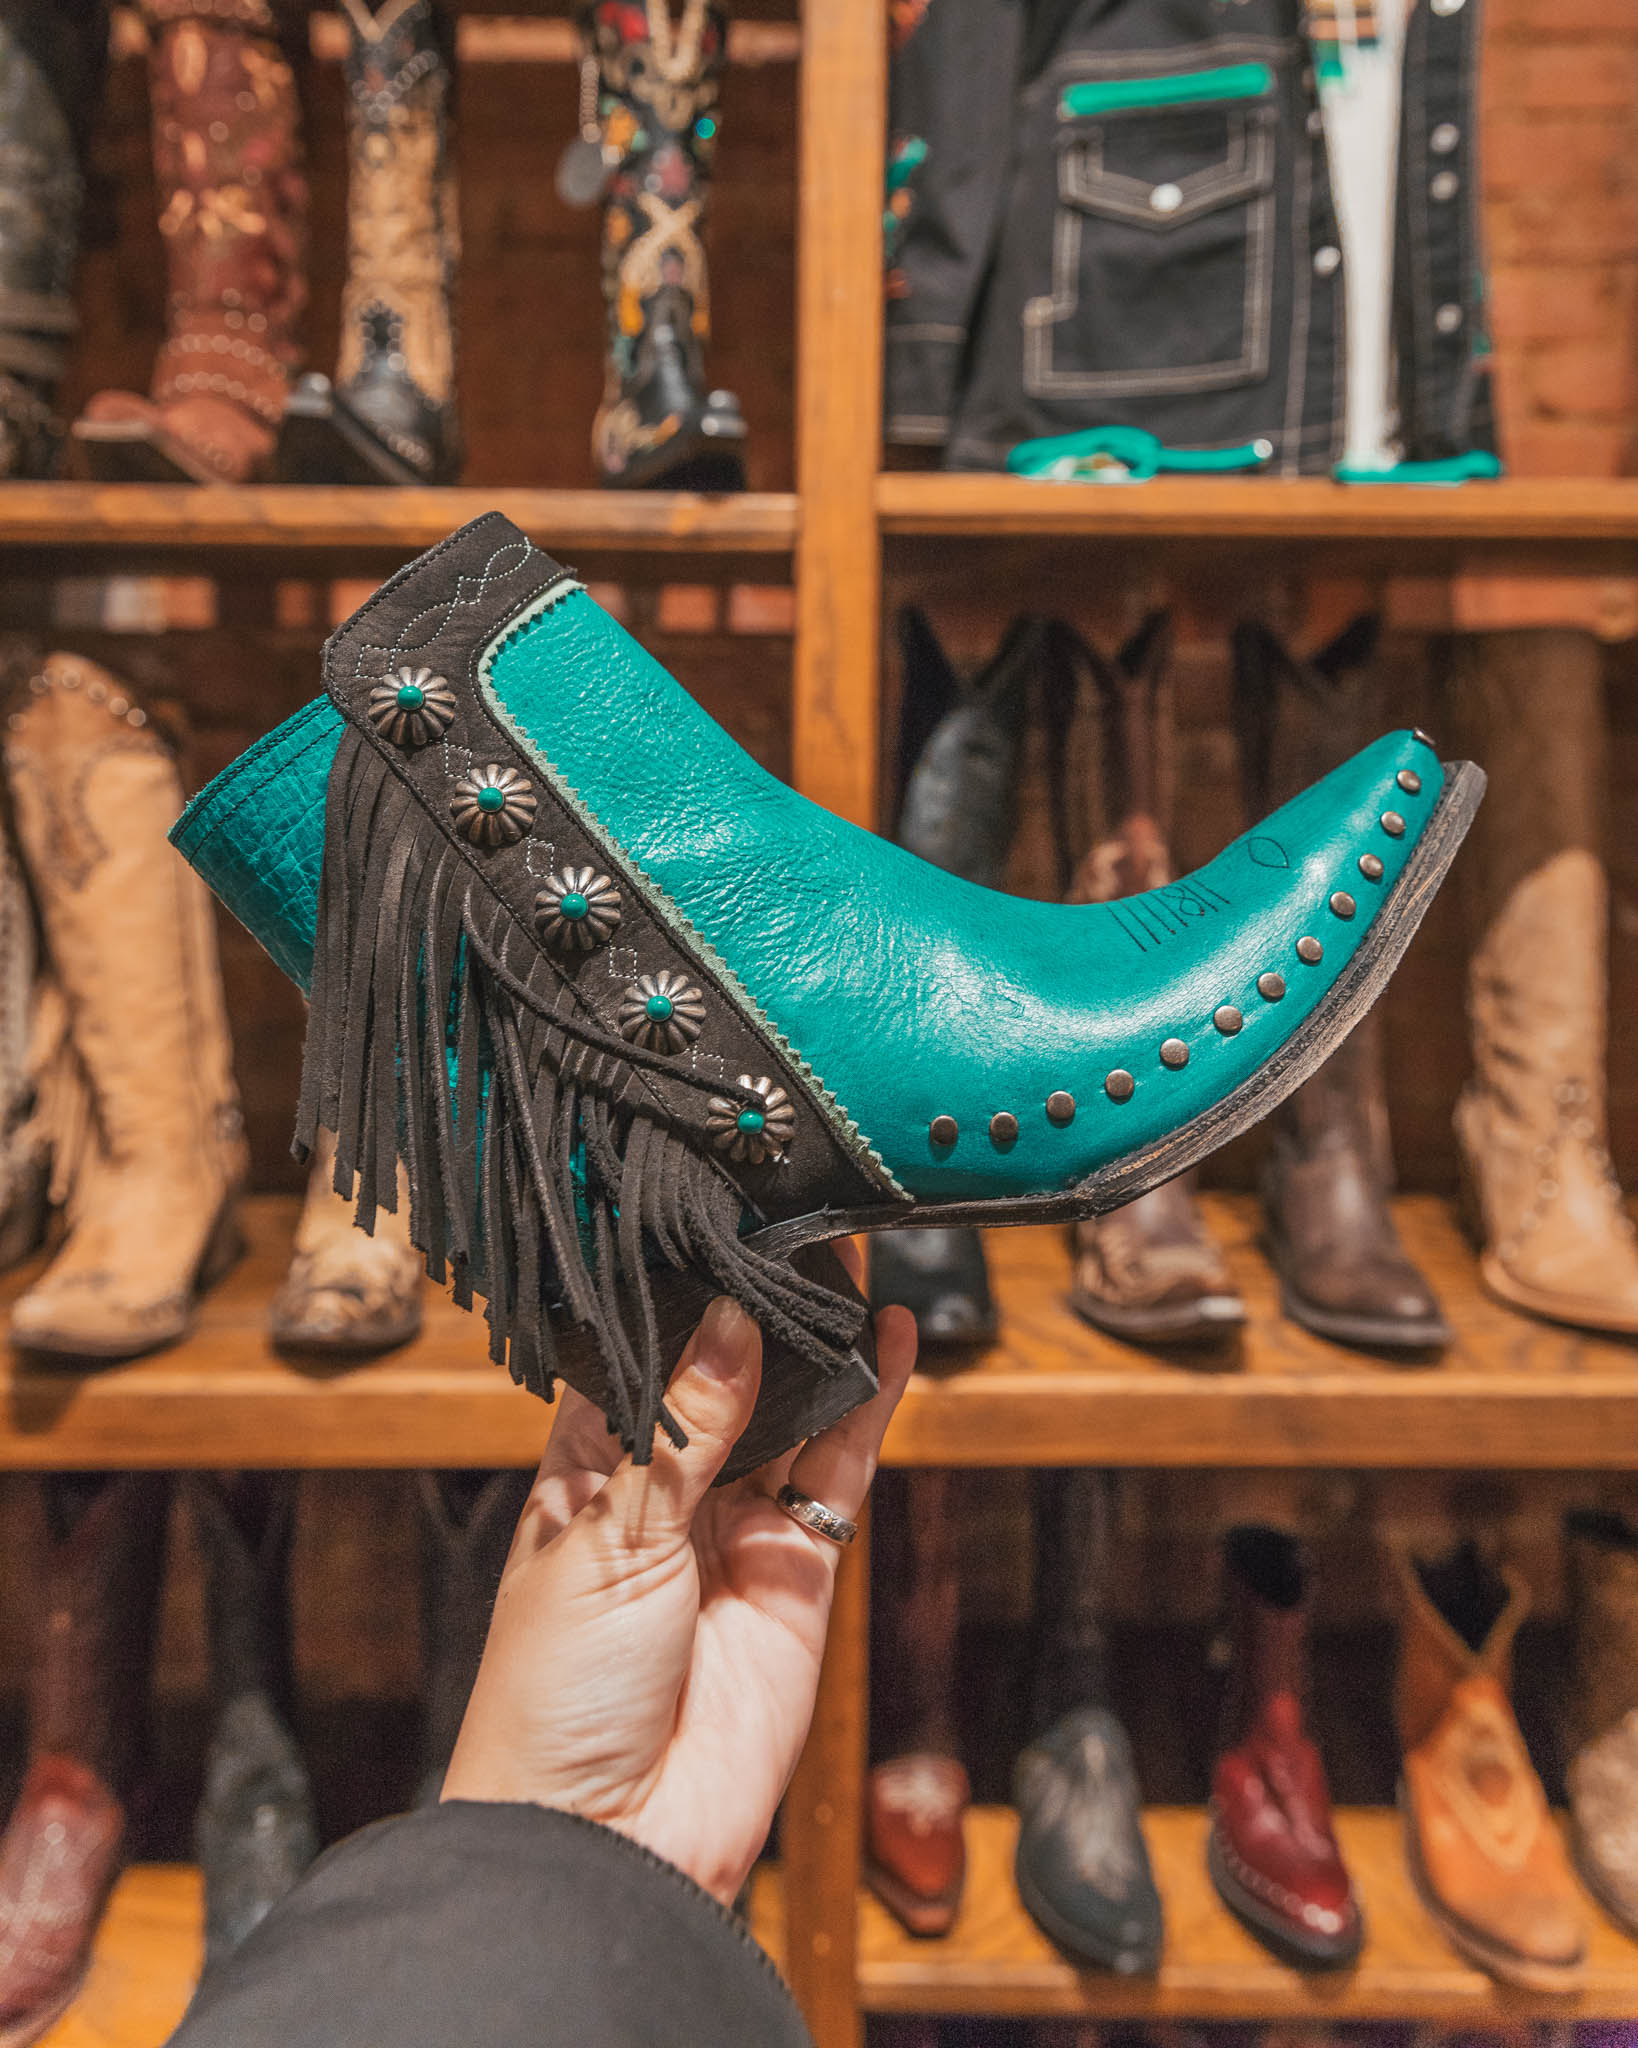 Cowboy boot shopping in the Fort Worth Stockyard for teal boots